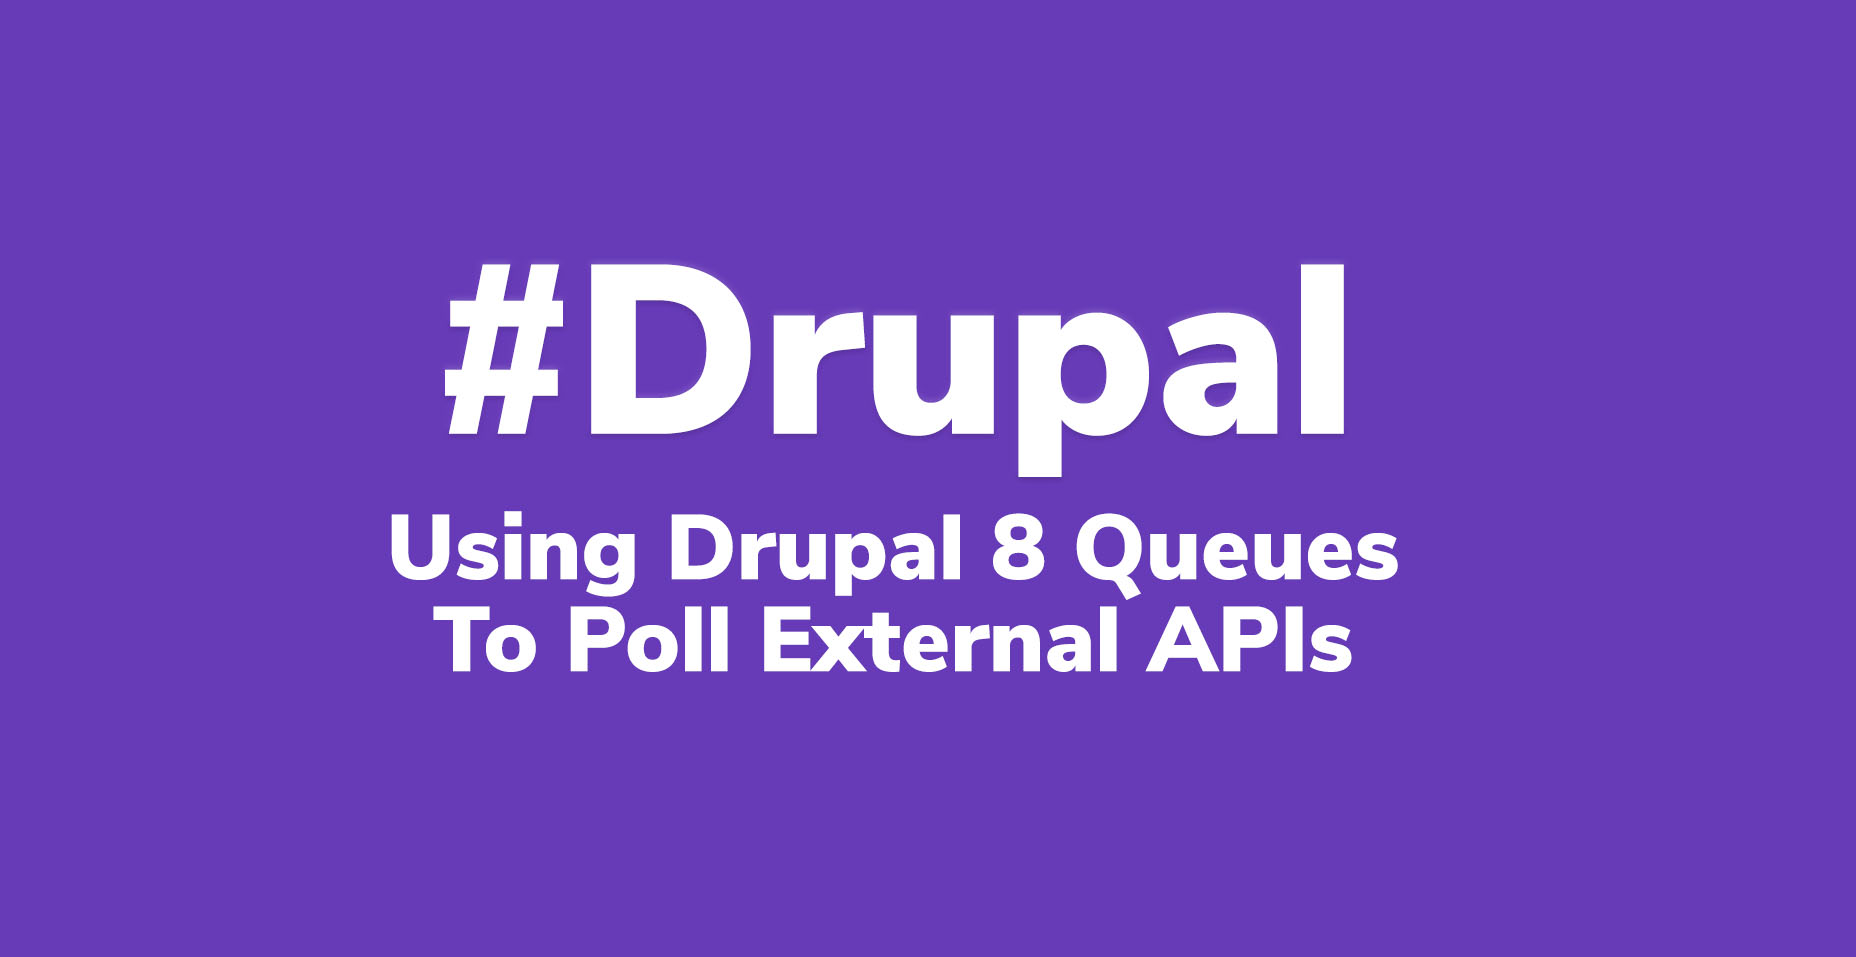 Using Drupal 8 Queues To Poll Orders From External APIs | Code Wall